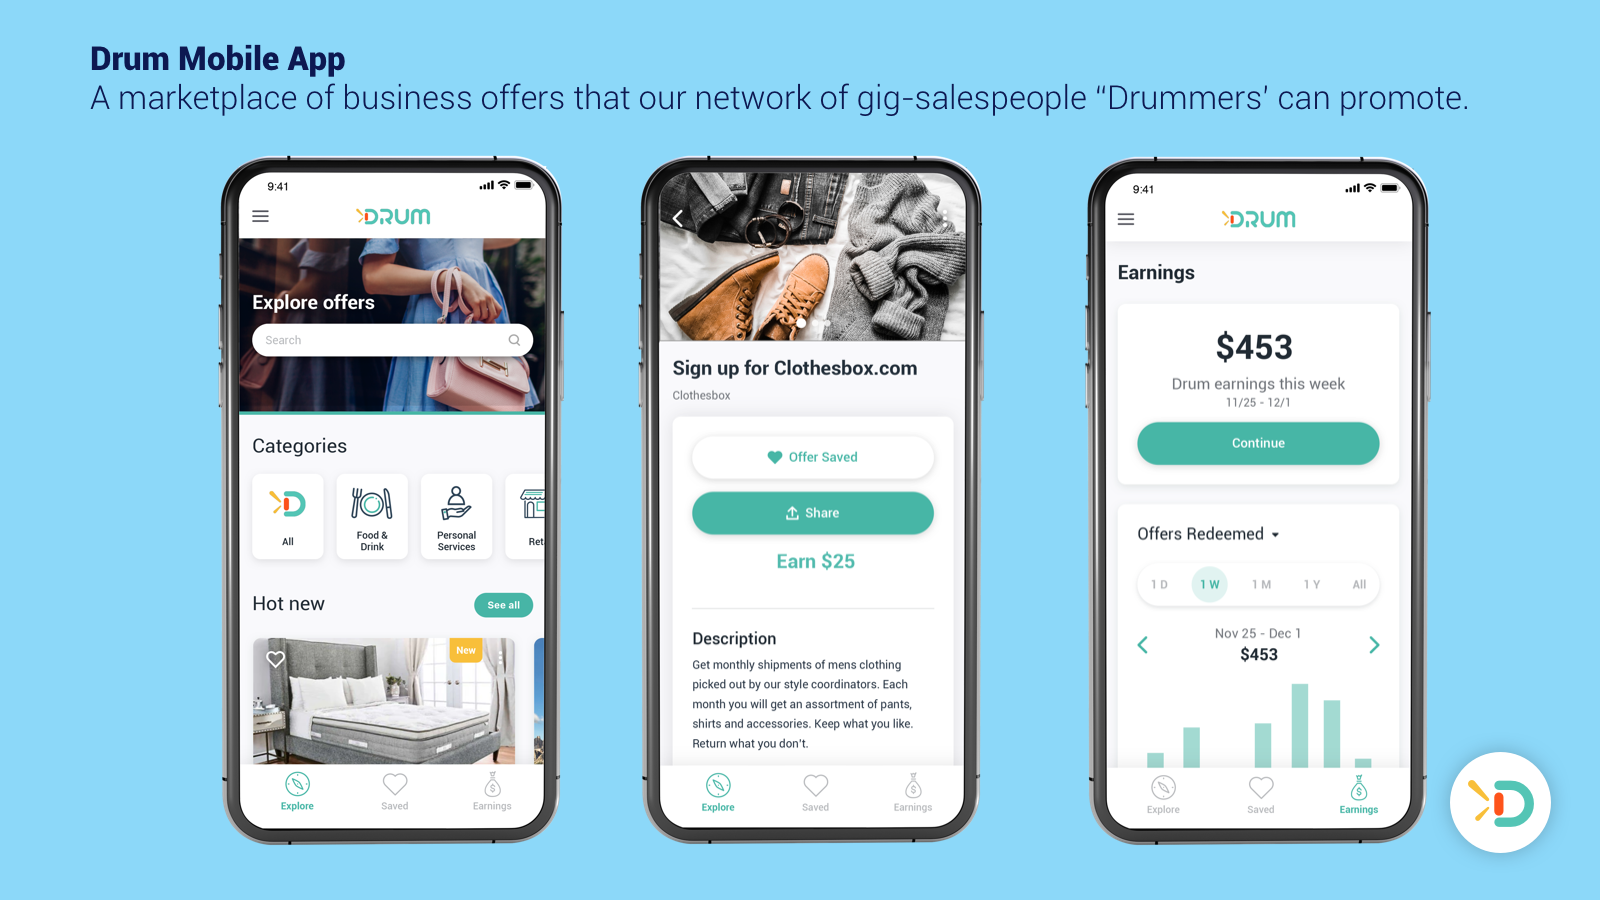 Drum - Where referrers can discover and share offers